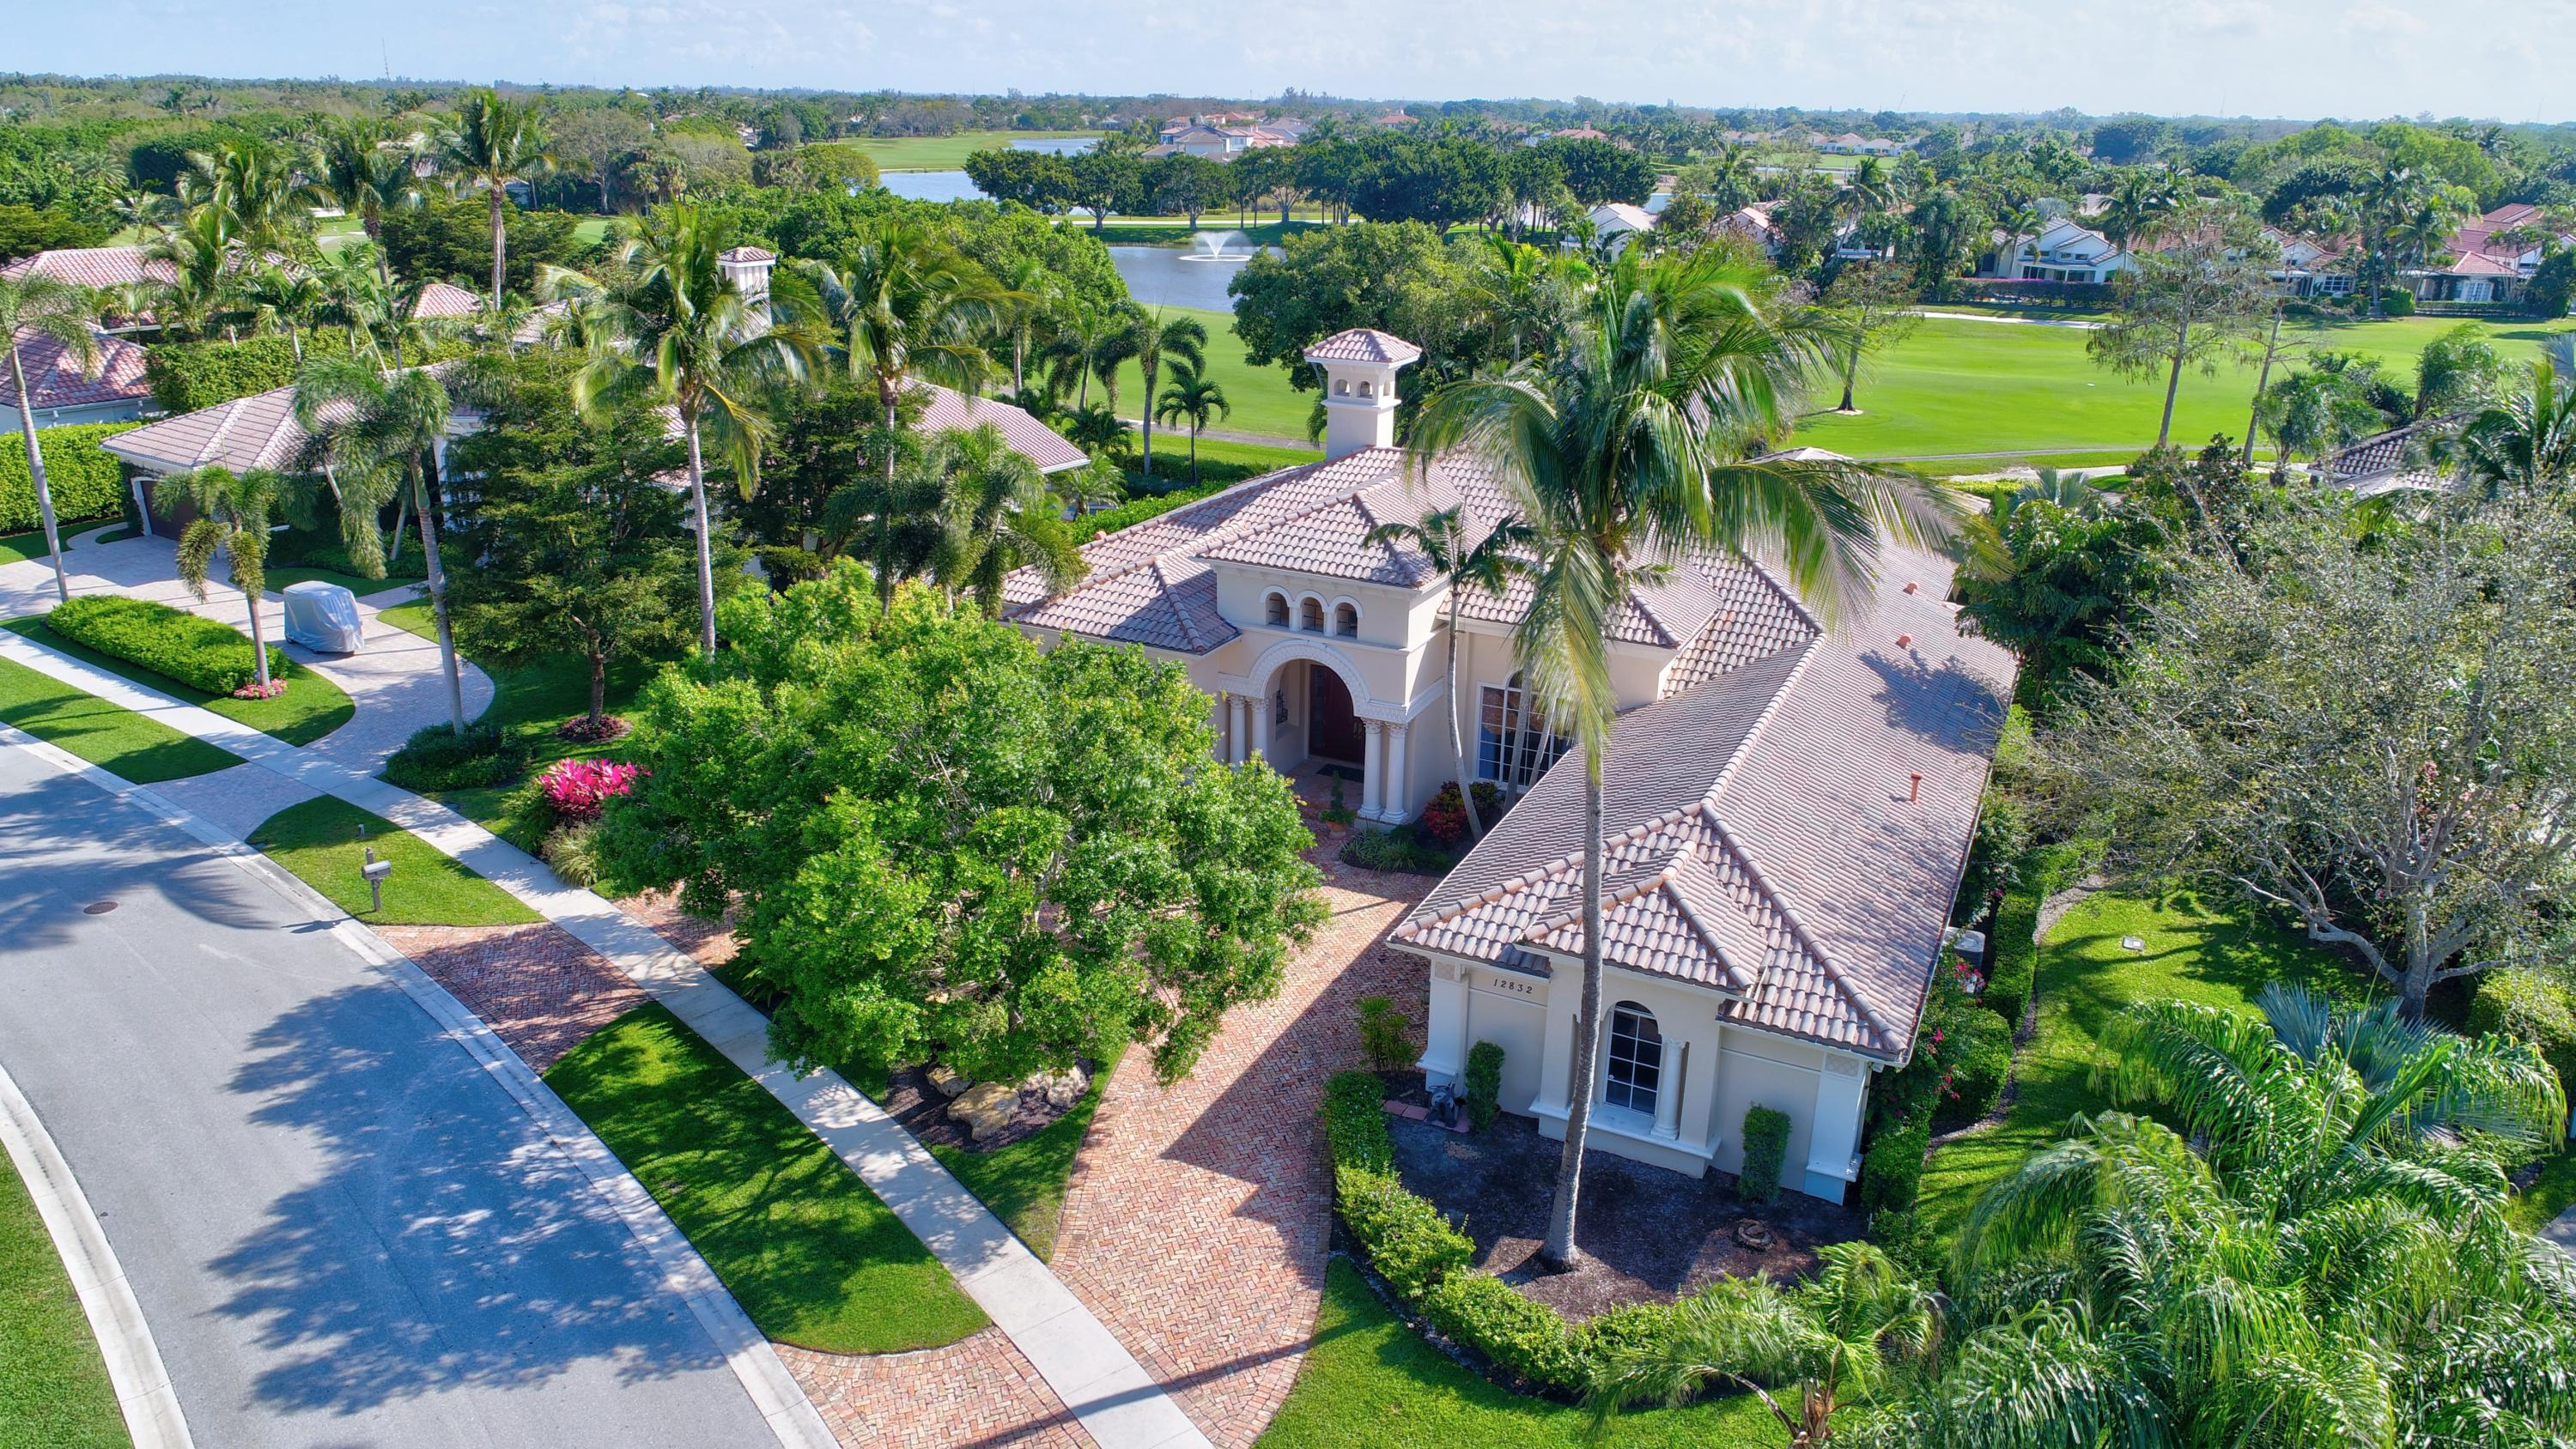 12832 Mizner Way, Wellington, Florida 33414, 4 Bedrooms Bedrooms, ,4.1 BathroomsBathrooms,Single Family,For Sale,PALM BEACH POLO,Mizner,RX-10492272